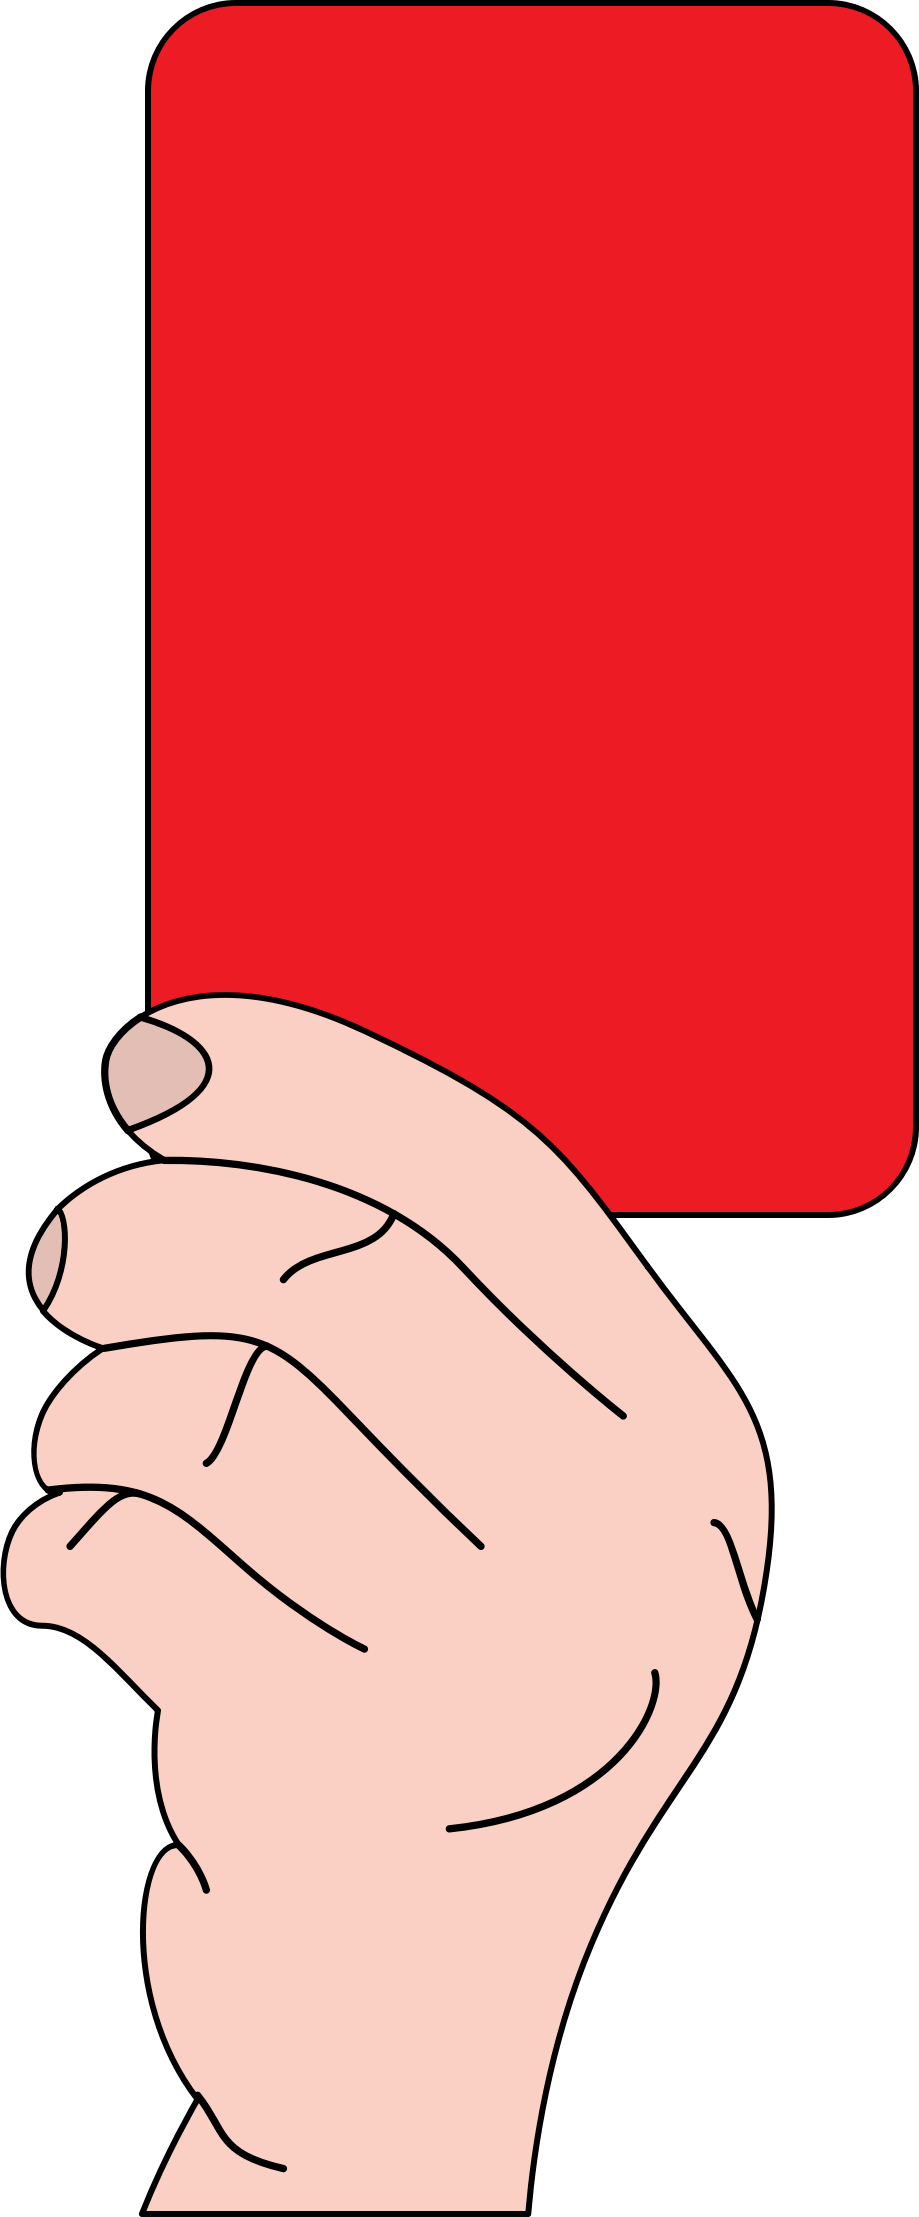 Referee showing red card by casino